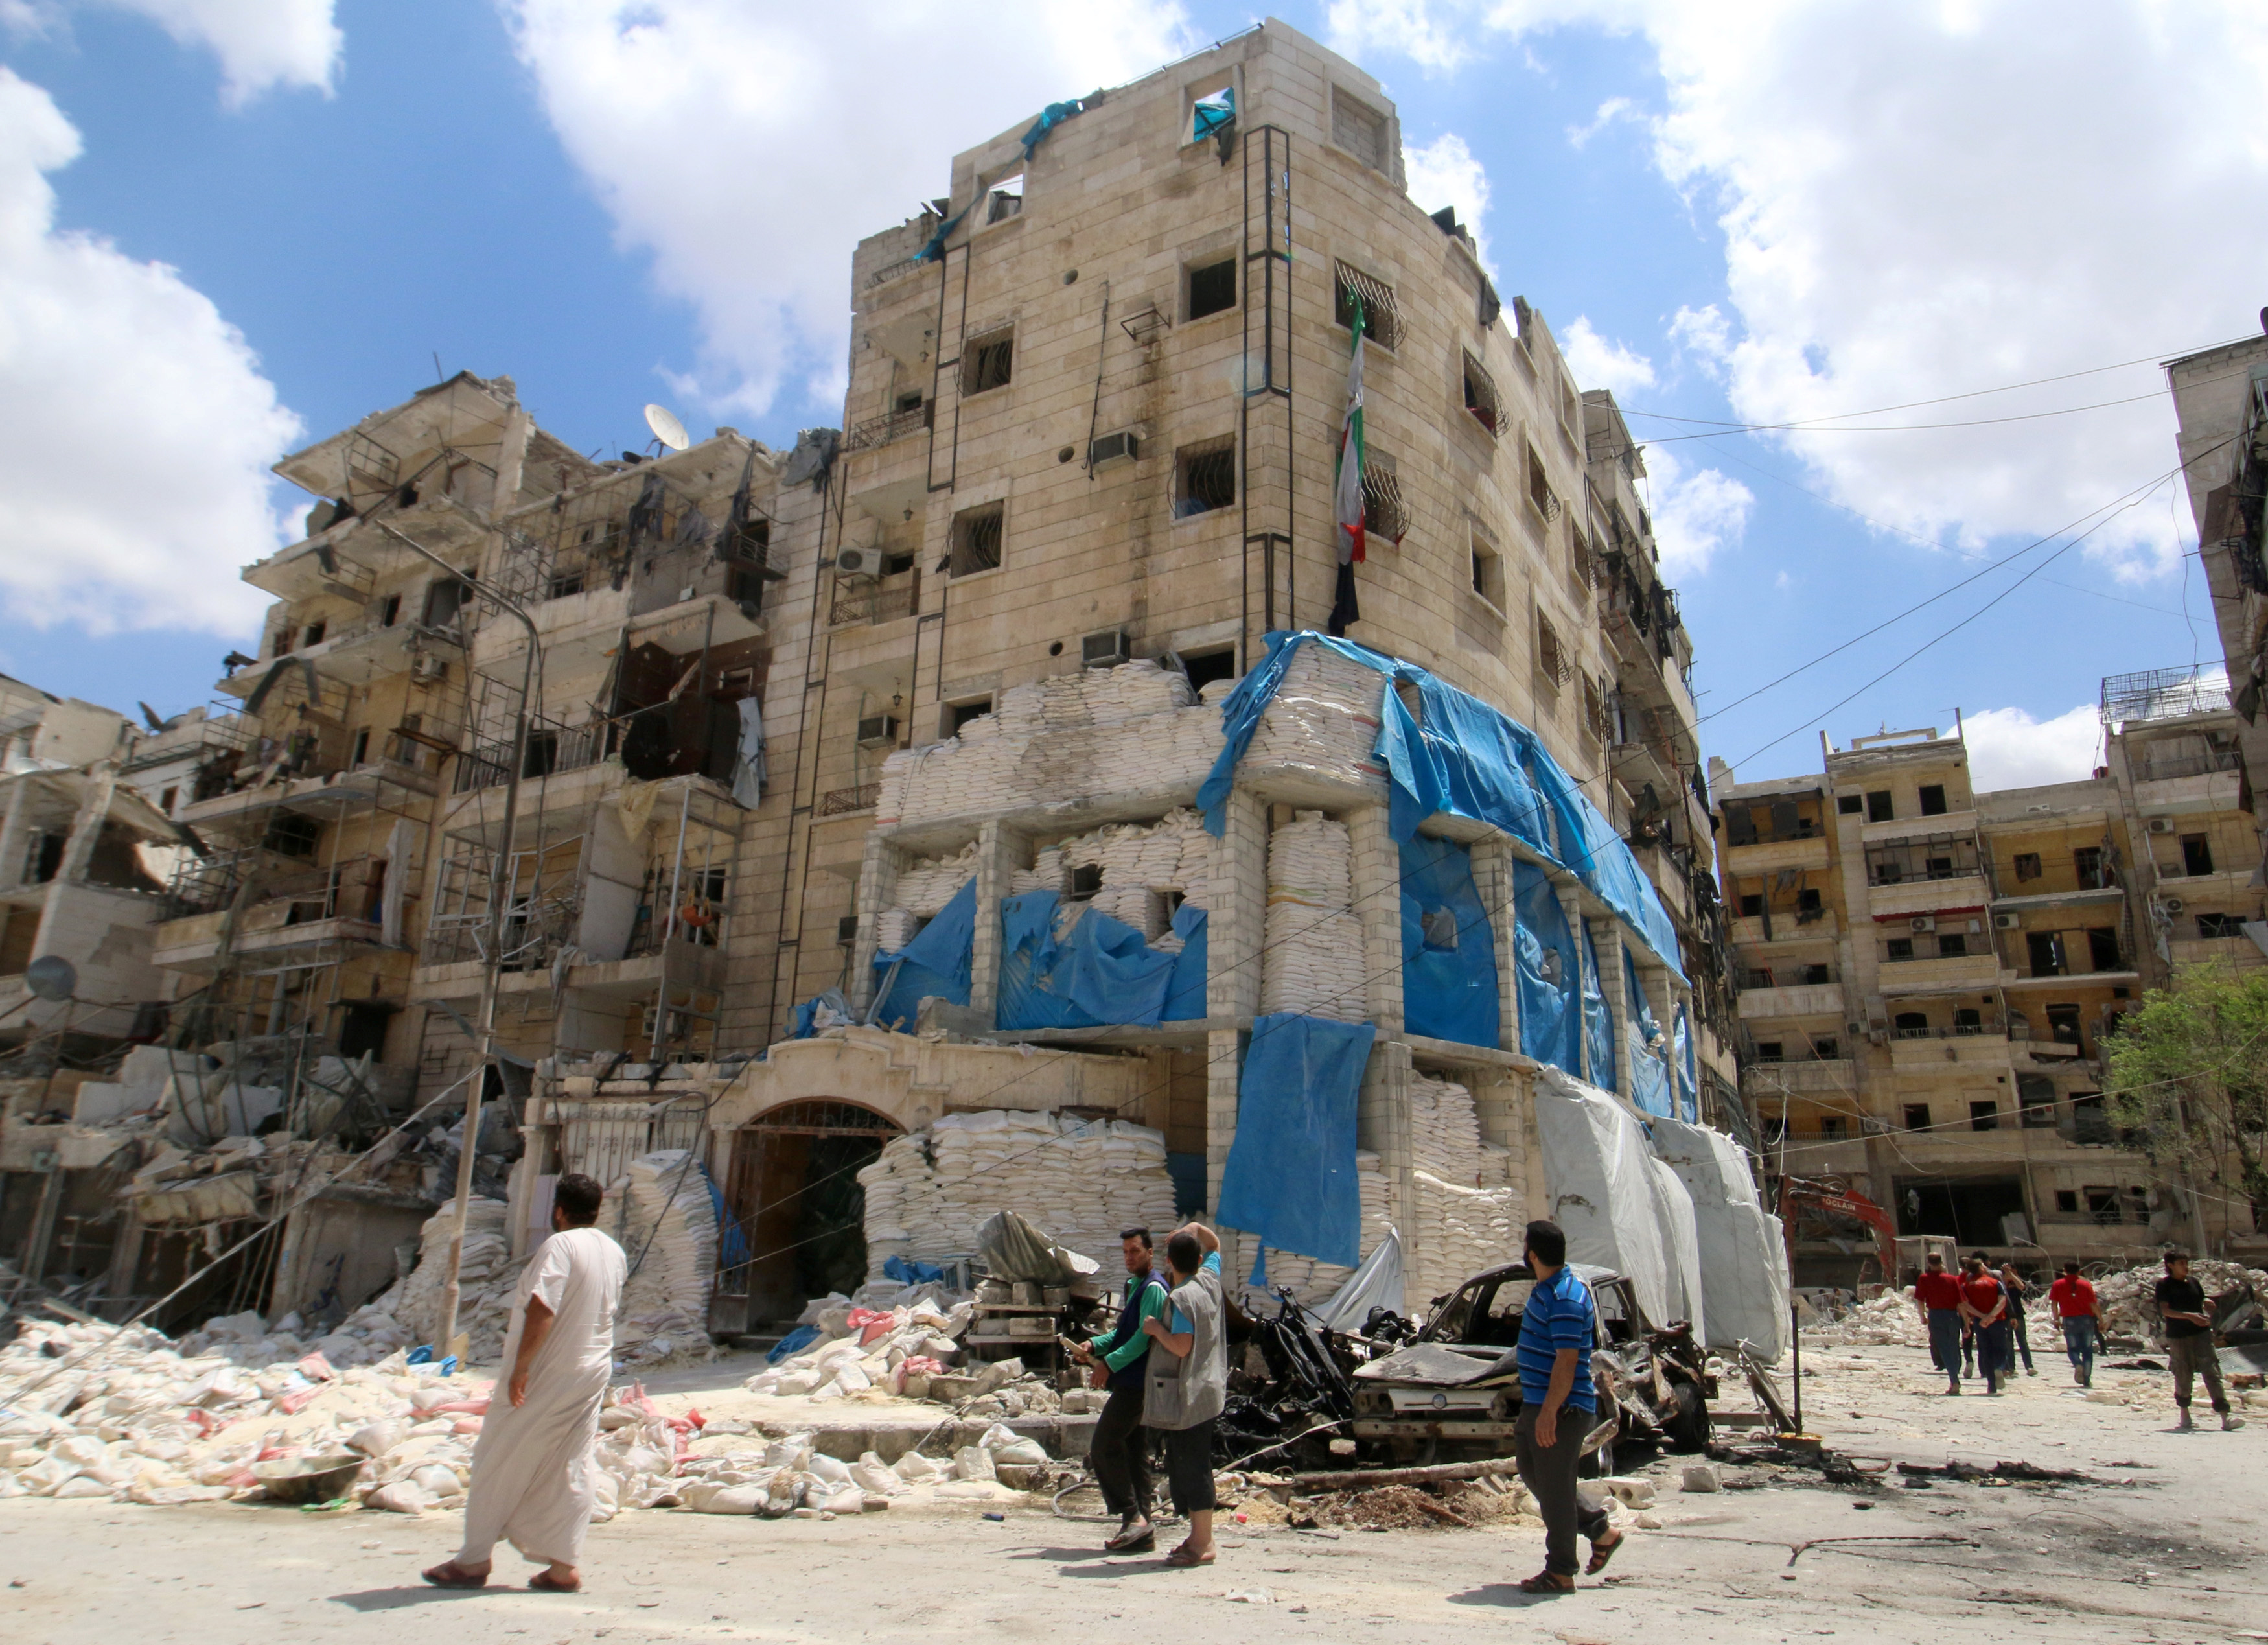 People inspect the damage at al-Quds hospital after it was hit by airstrikes, in a rebel-held area of Syria's Aleppo, April 28, 2016.